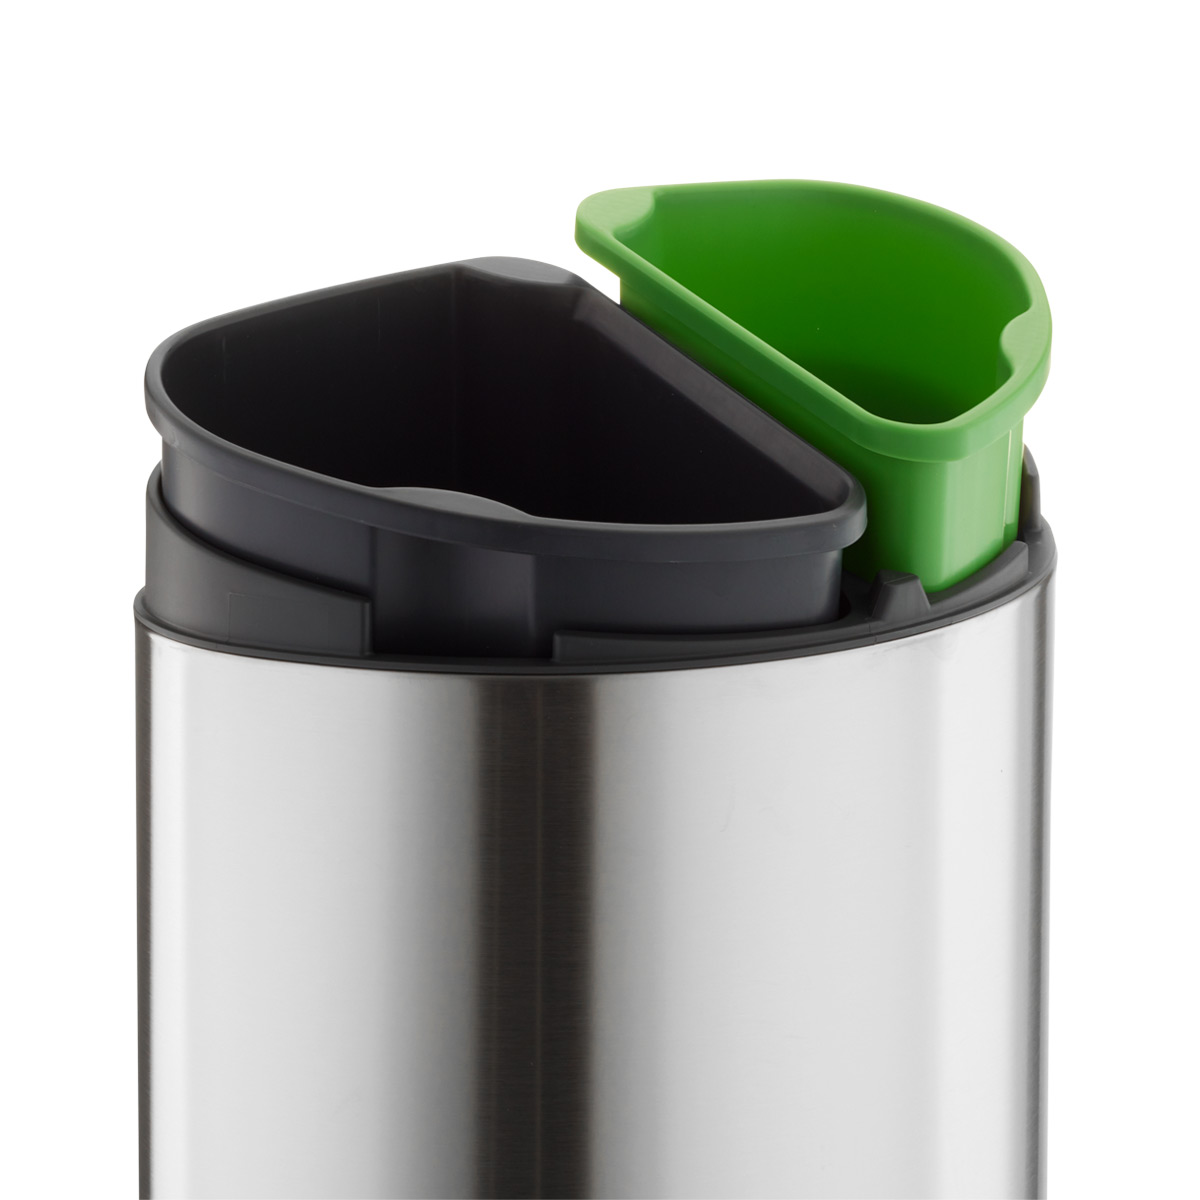 Stainless Steel Recycling Bins Brabantia Stainless Steel 8 6 Gal 33l Touch Top Dual Recycle Bin